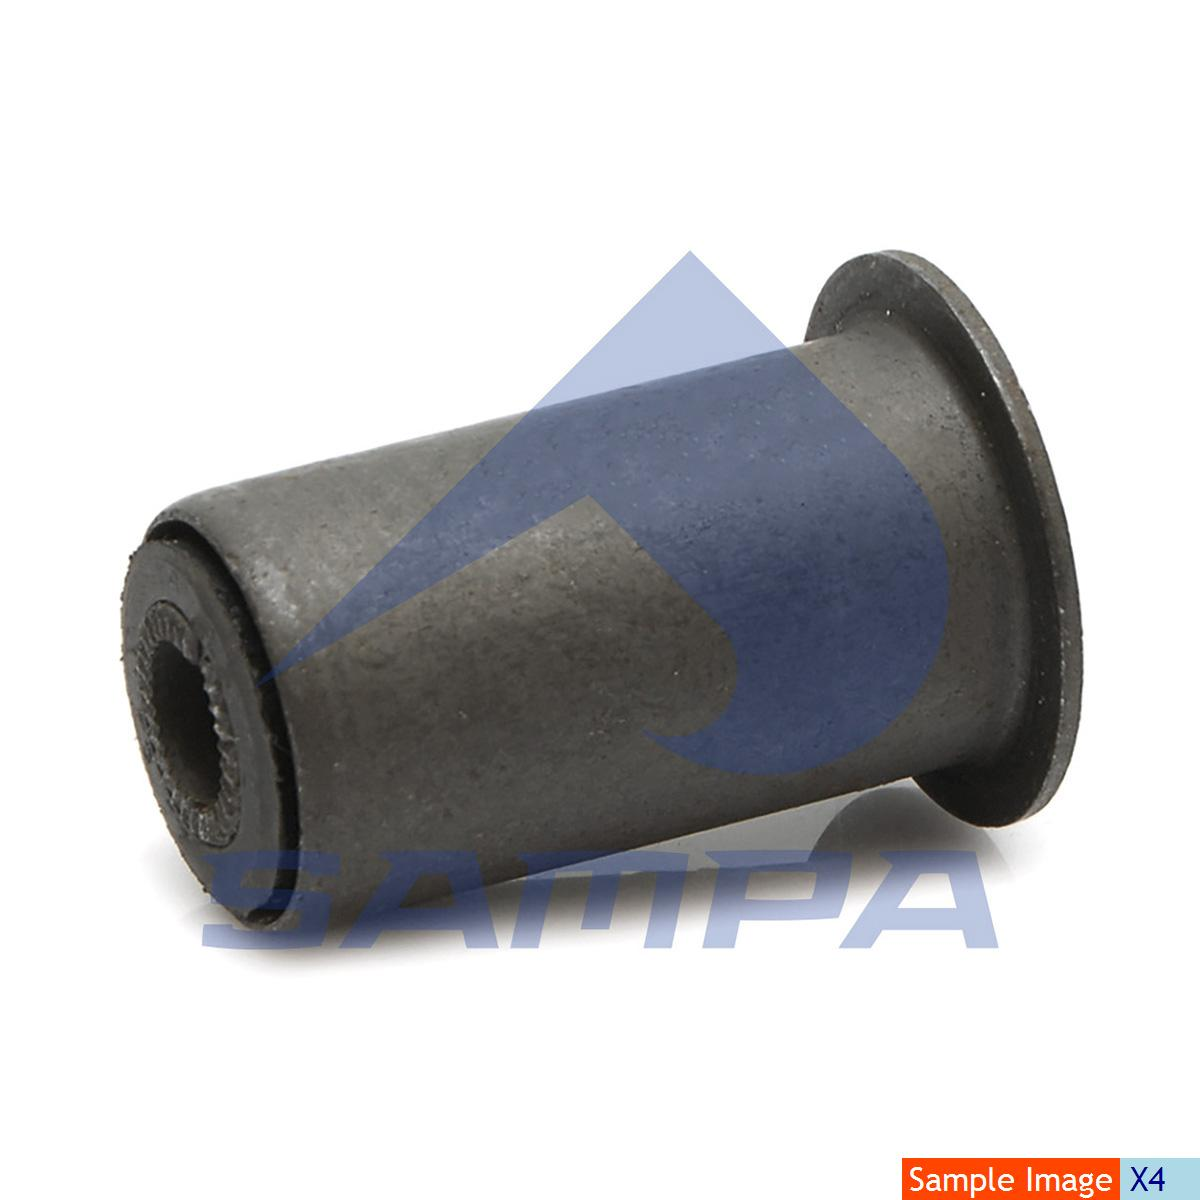 Rubber Bushing, Spring, GMC, Suspension